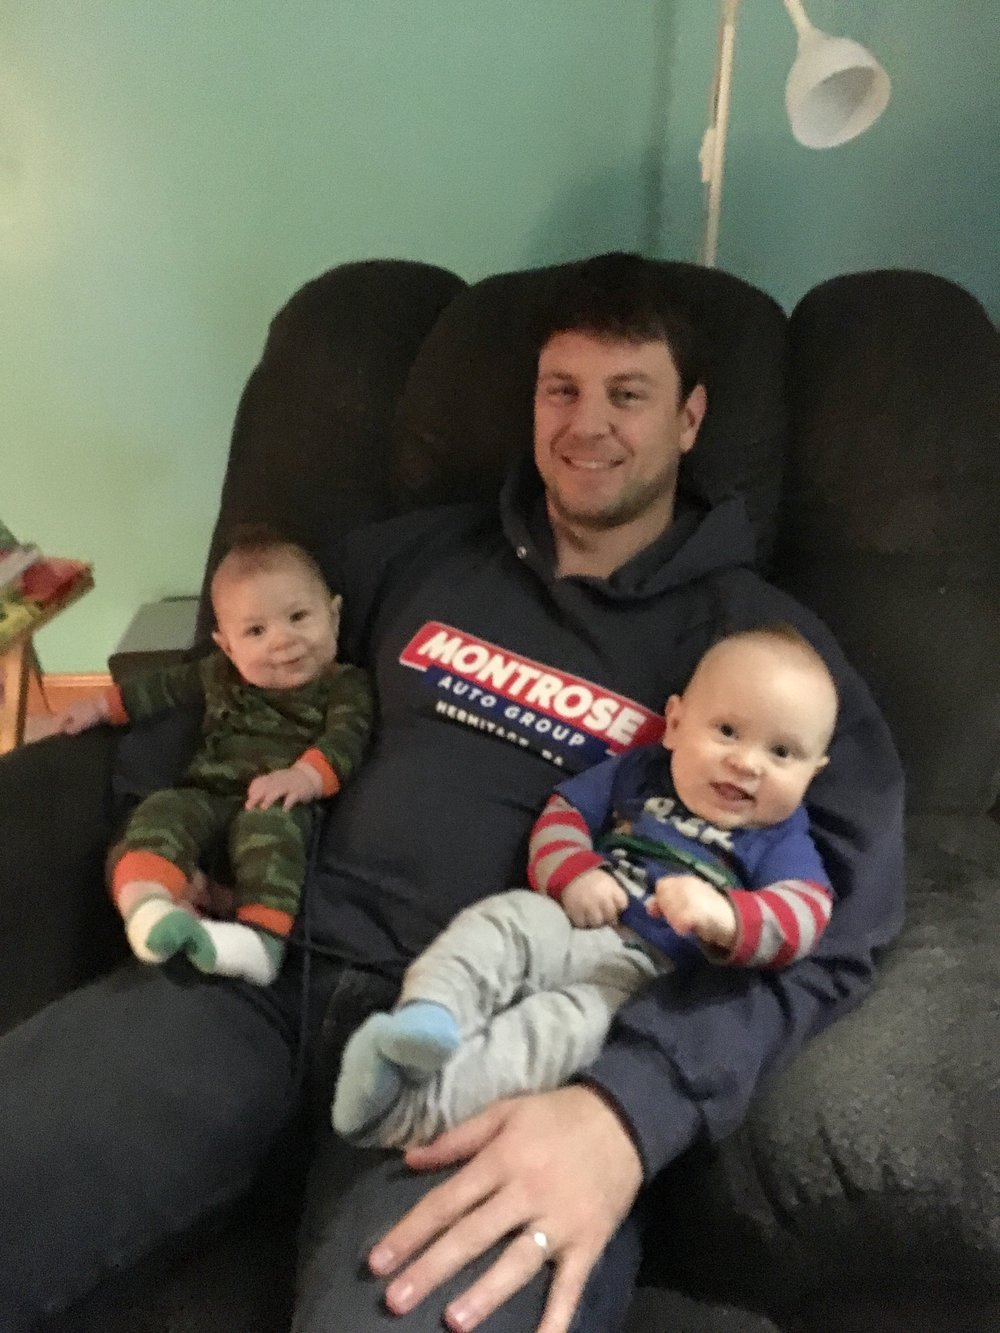 Ryker, Daddy (Justin), and Reece